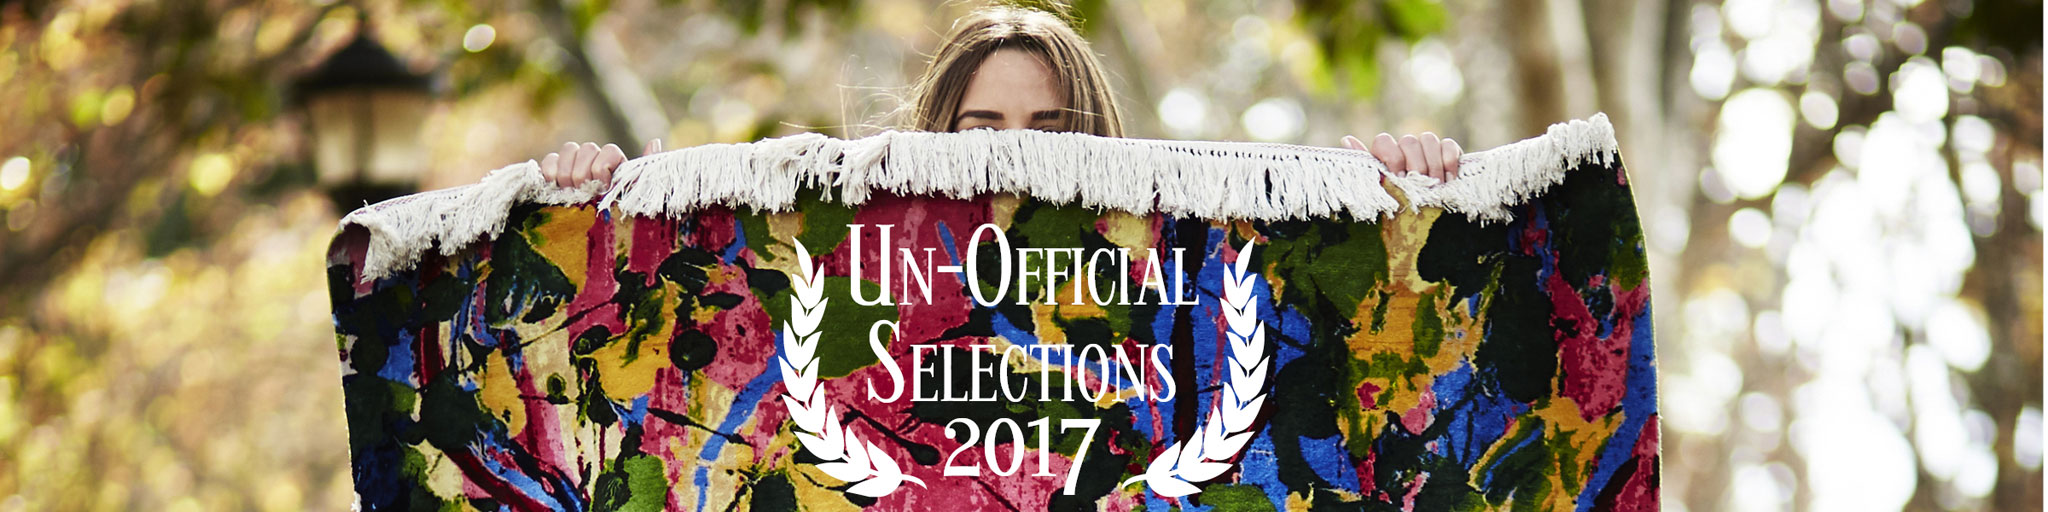 Un-Official Selections 2017